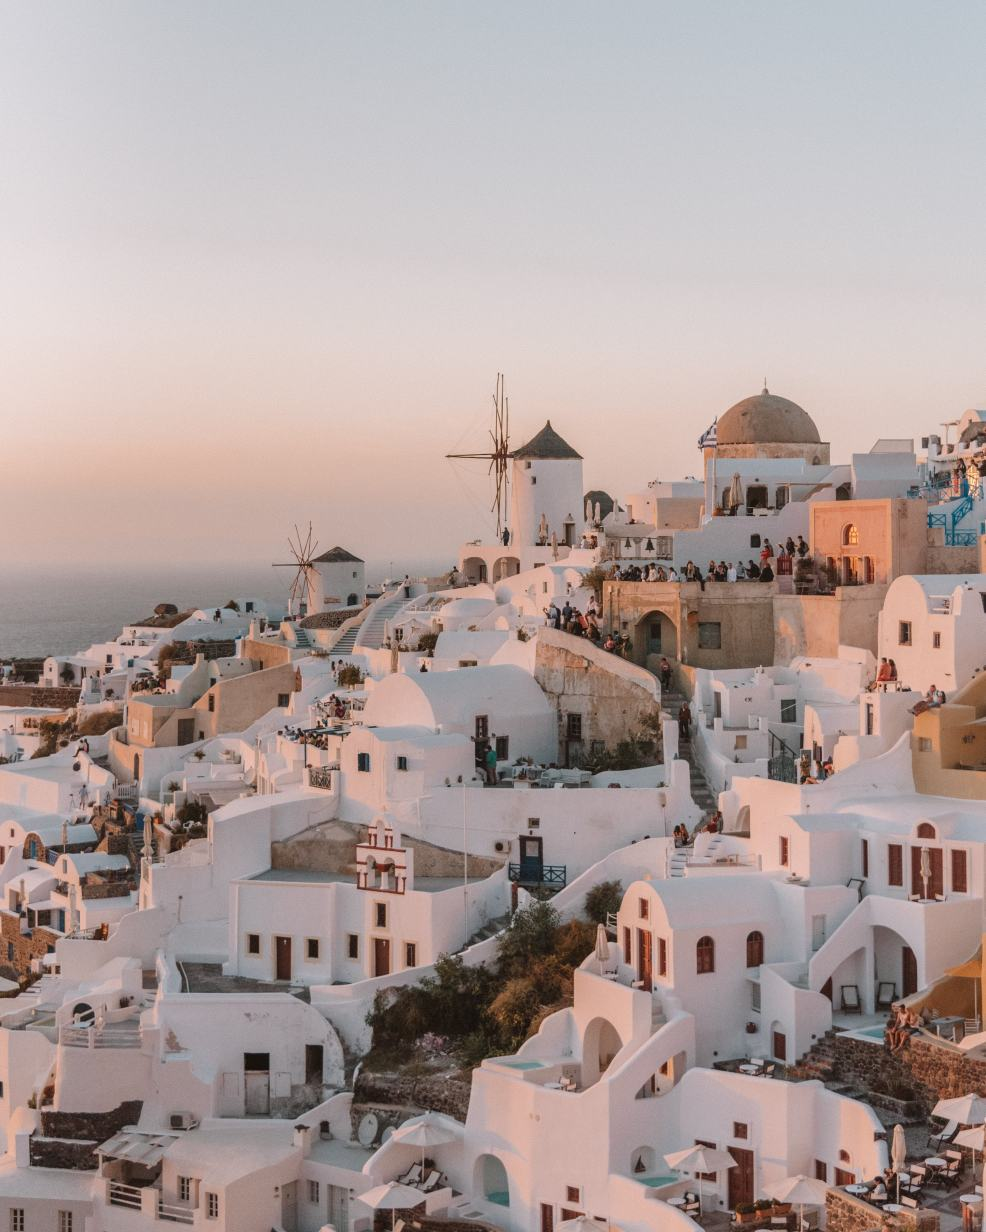 How to get to Santorini from Athens, Things to do in Santorini, Places to visit in Santorini, Beaches in Santorini, meltemi village, oia